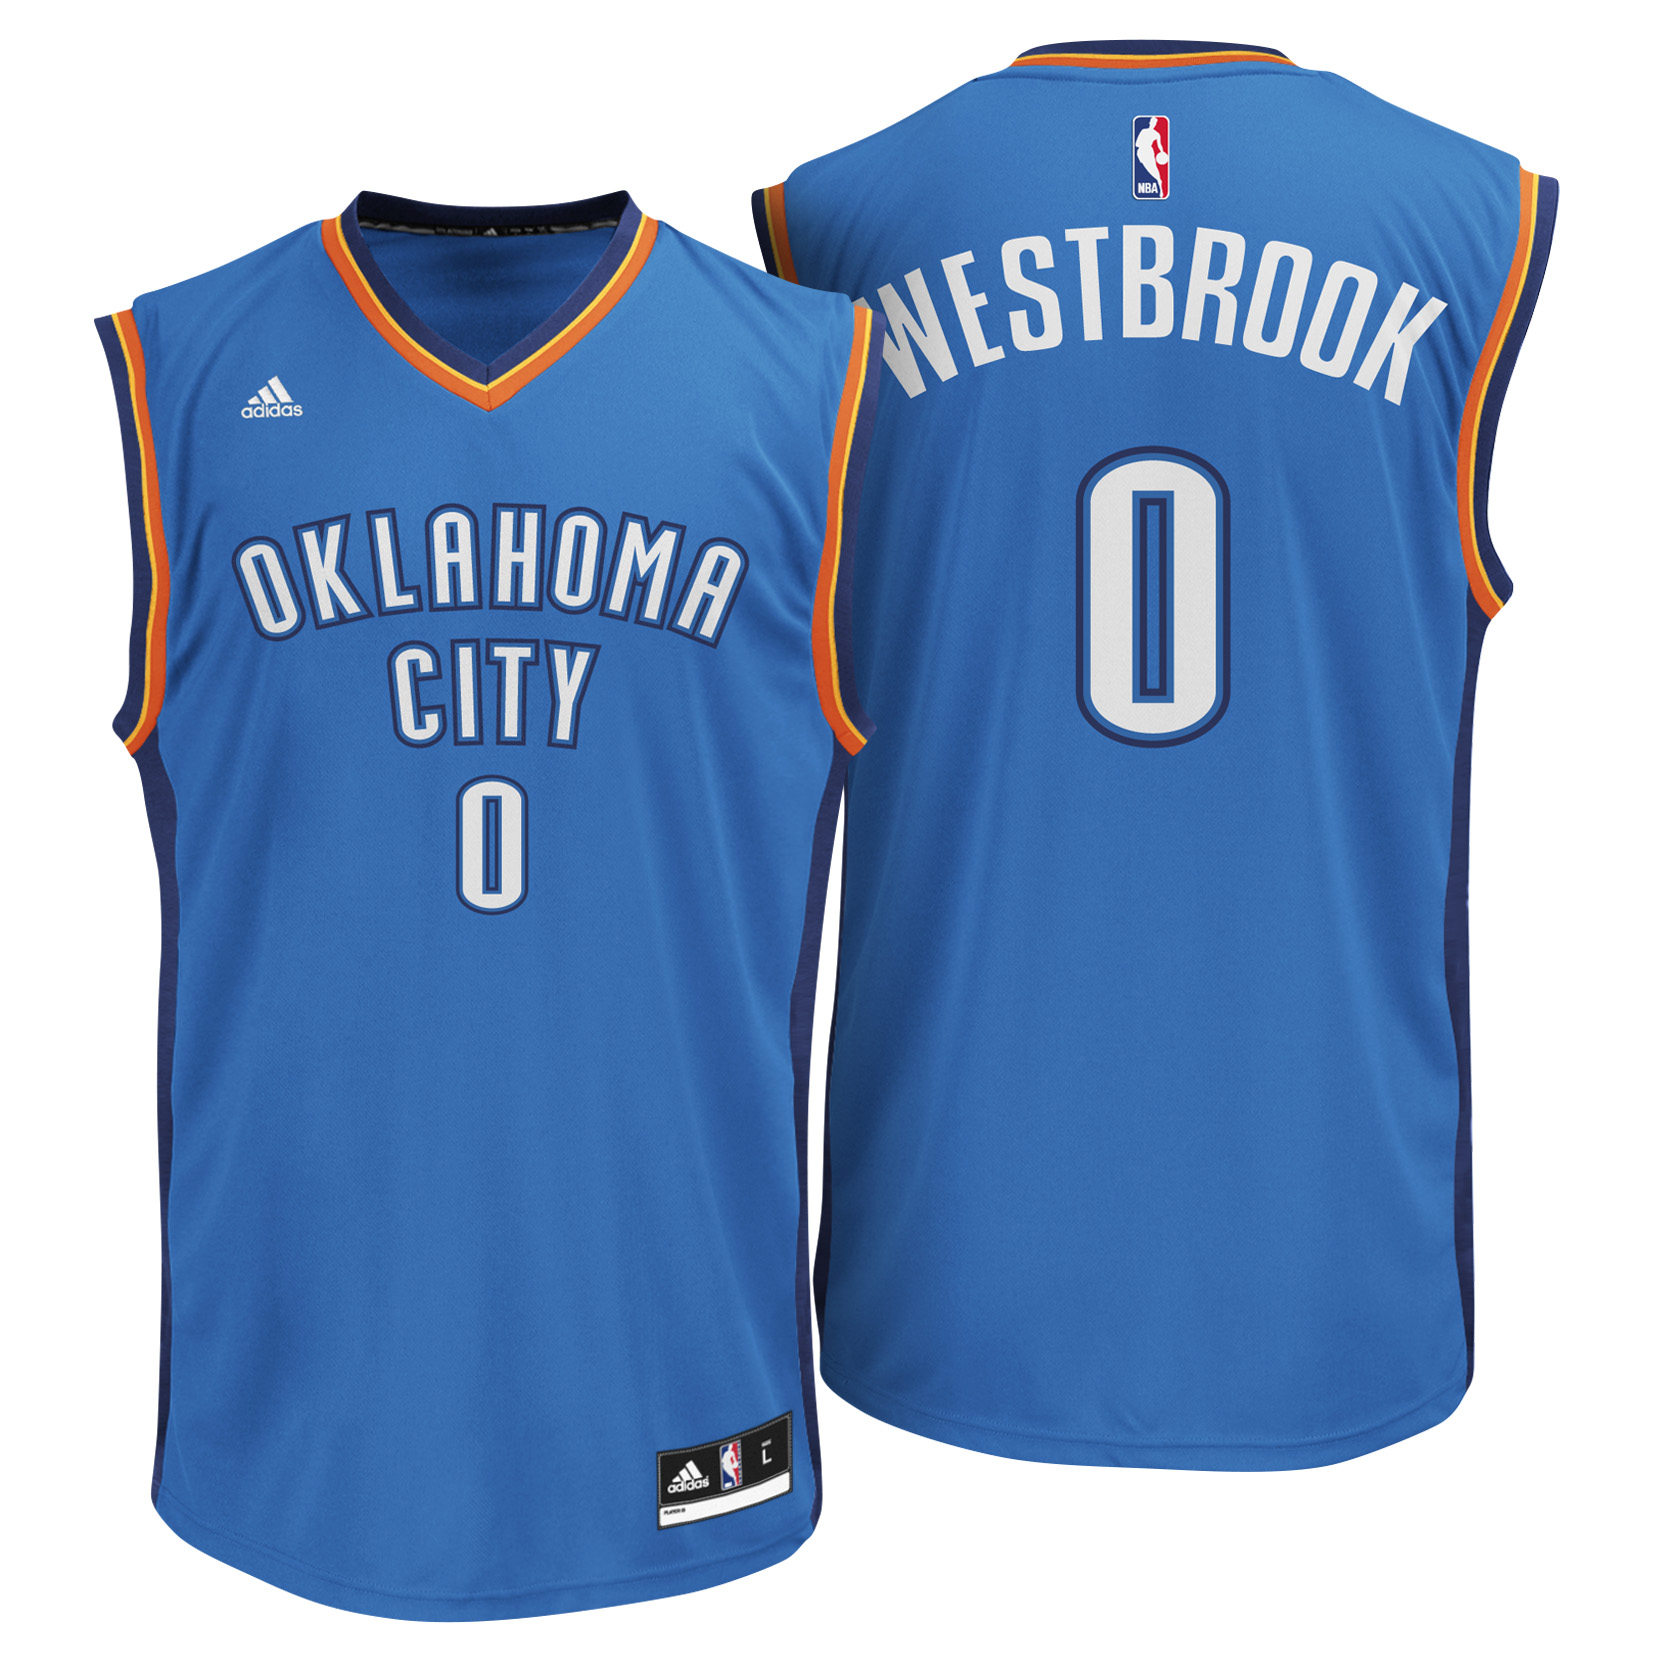 Oklahoma City Thunder Road Replica Jersey - Russell Westbrook